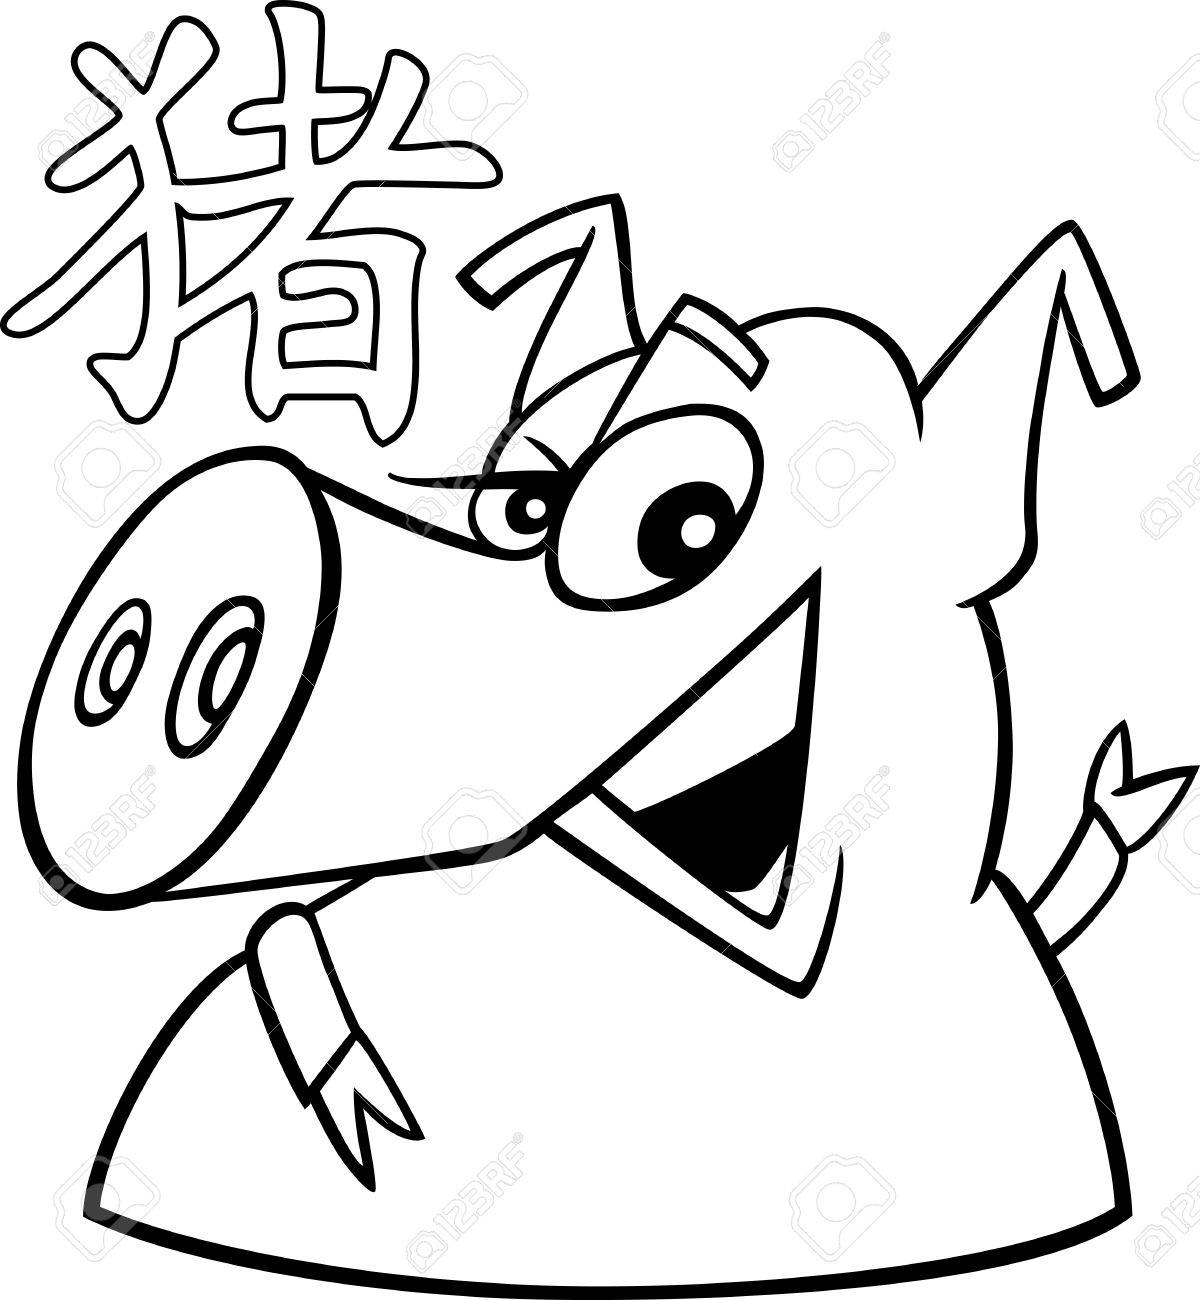 Black and white cartoon illustration of Pig Chinese horoscope sign Stock Vector - 12938392